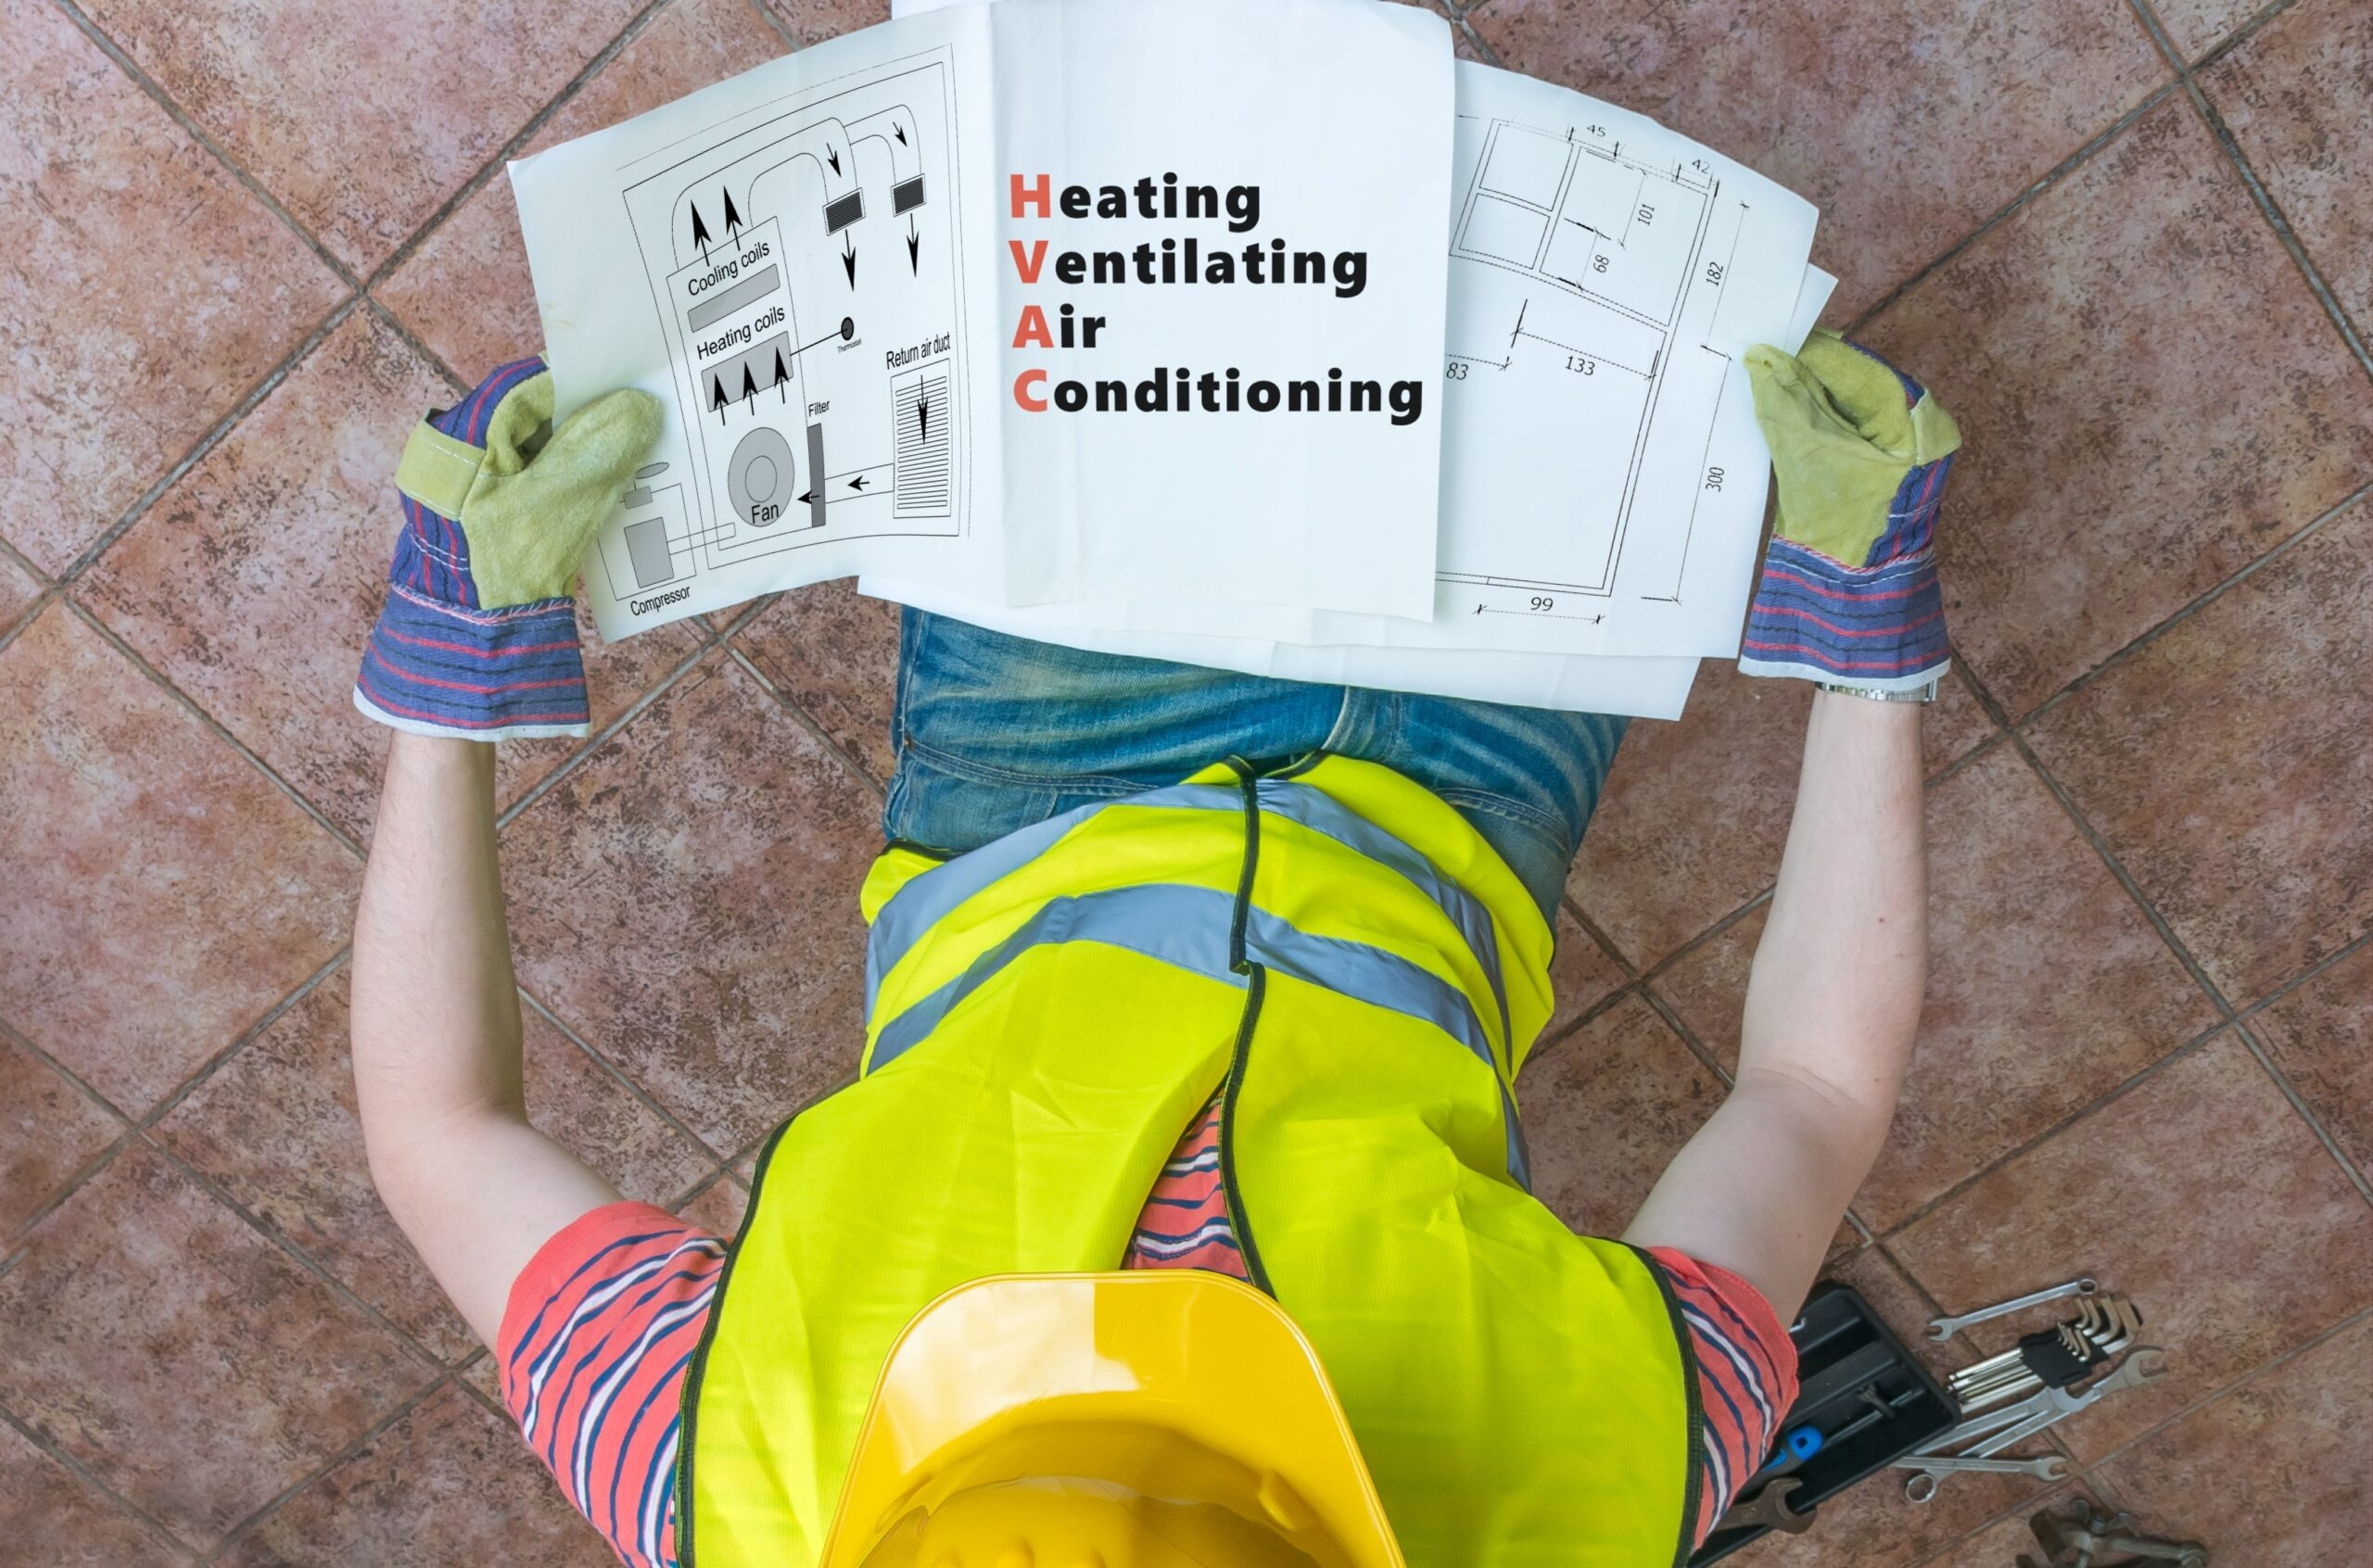 Experience, Detail, Dedication and YOU: Join the Sensible Heating & Cooling Team